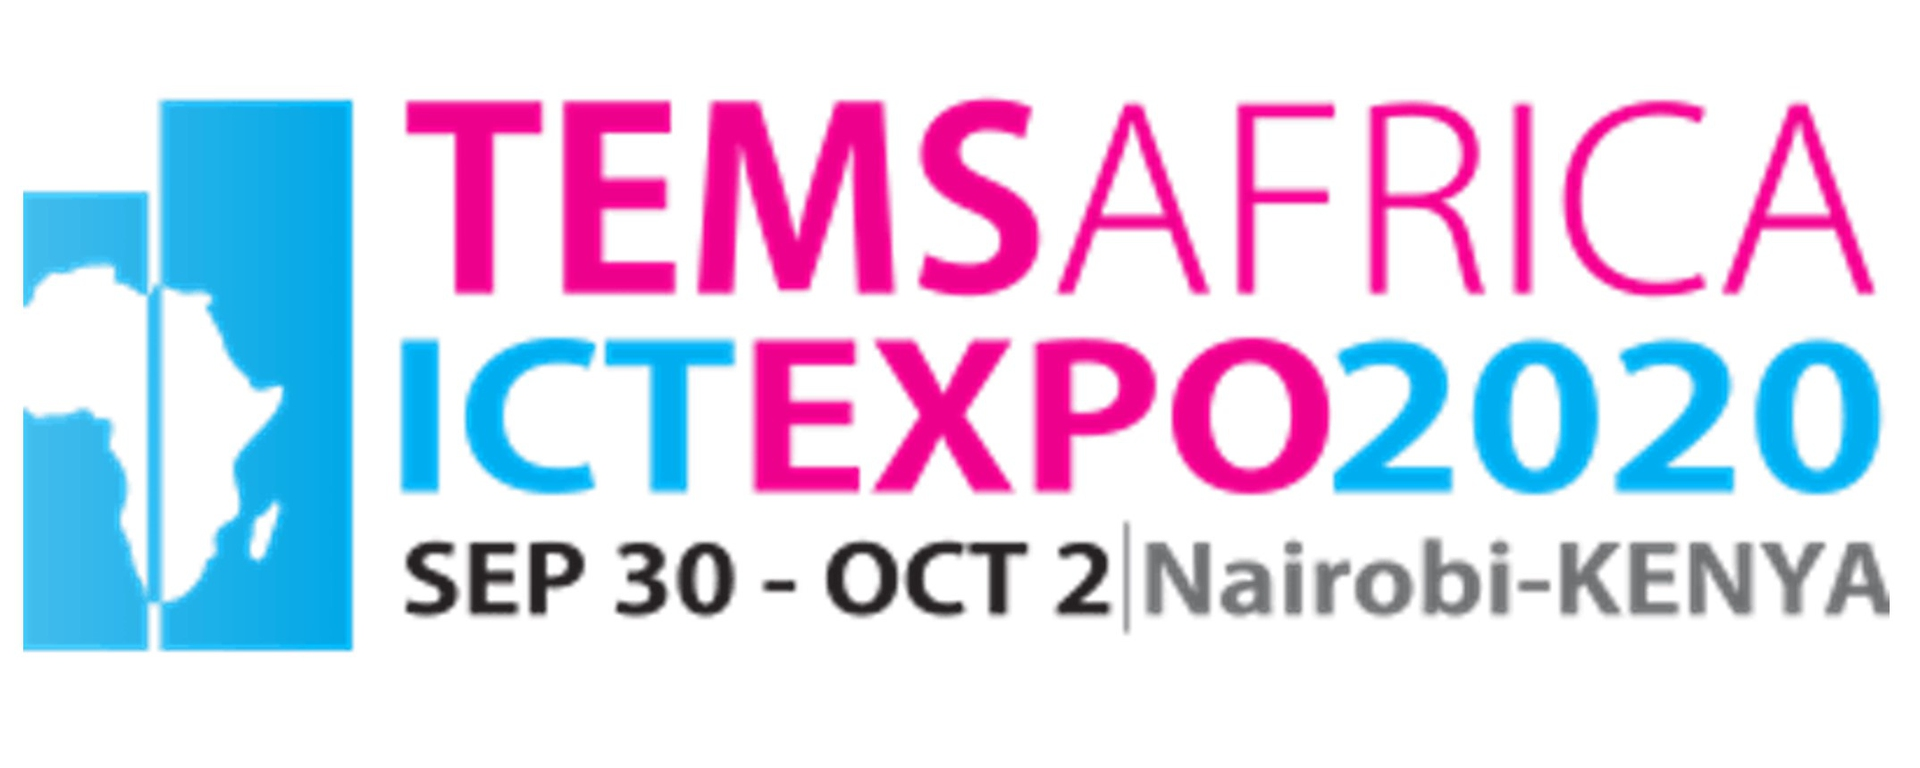 Jim Africa Exhibitions - 2020 TEMS Africa ICT Expo Edition Movemeback African event cover image